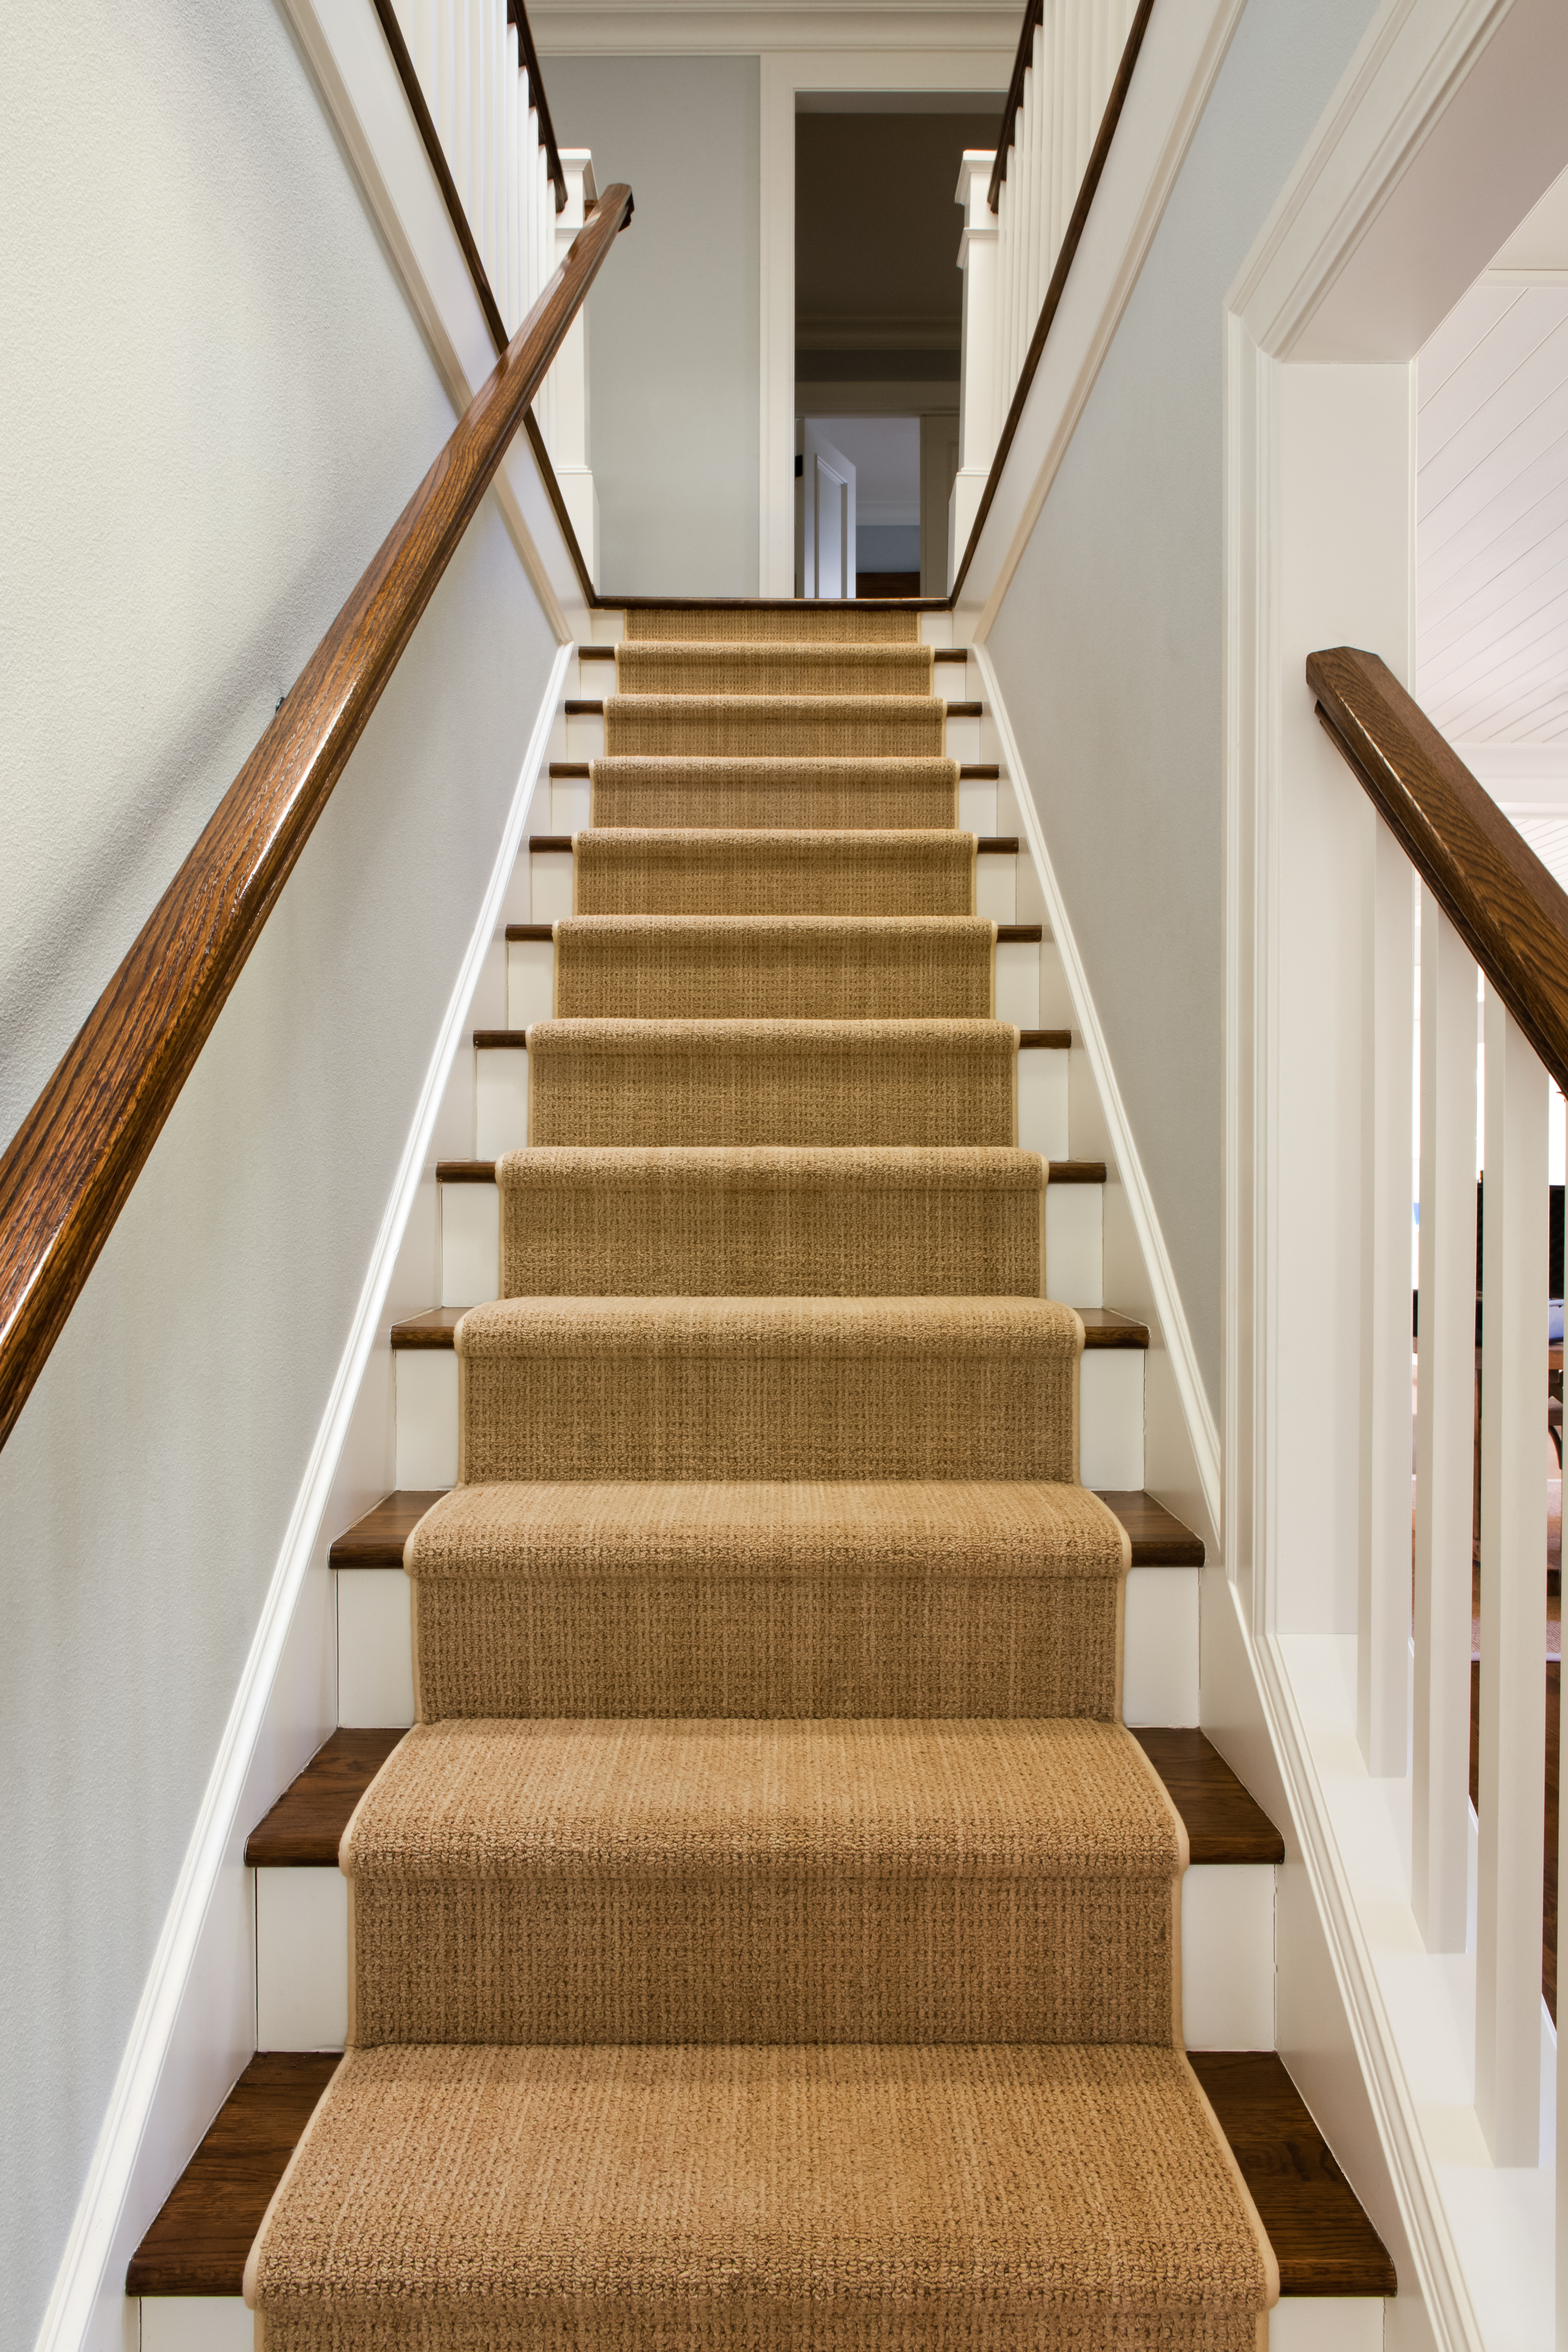 Carpeting stairs carpet runner stairs_david papazianu0027_183438956 XOOTFKH